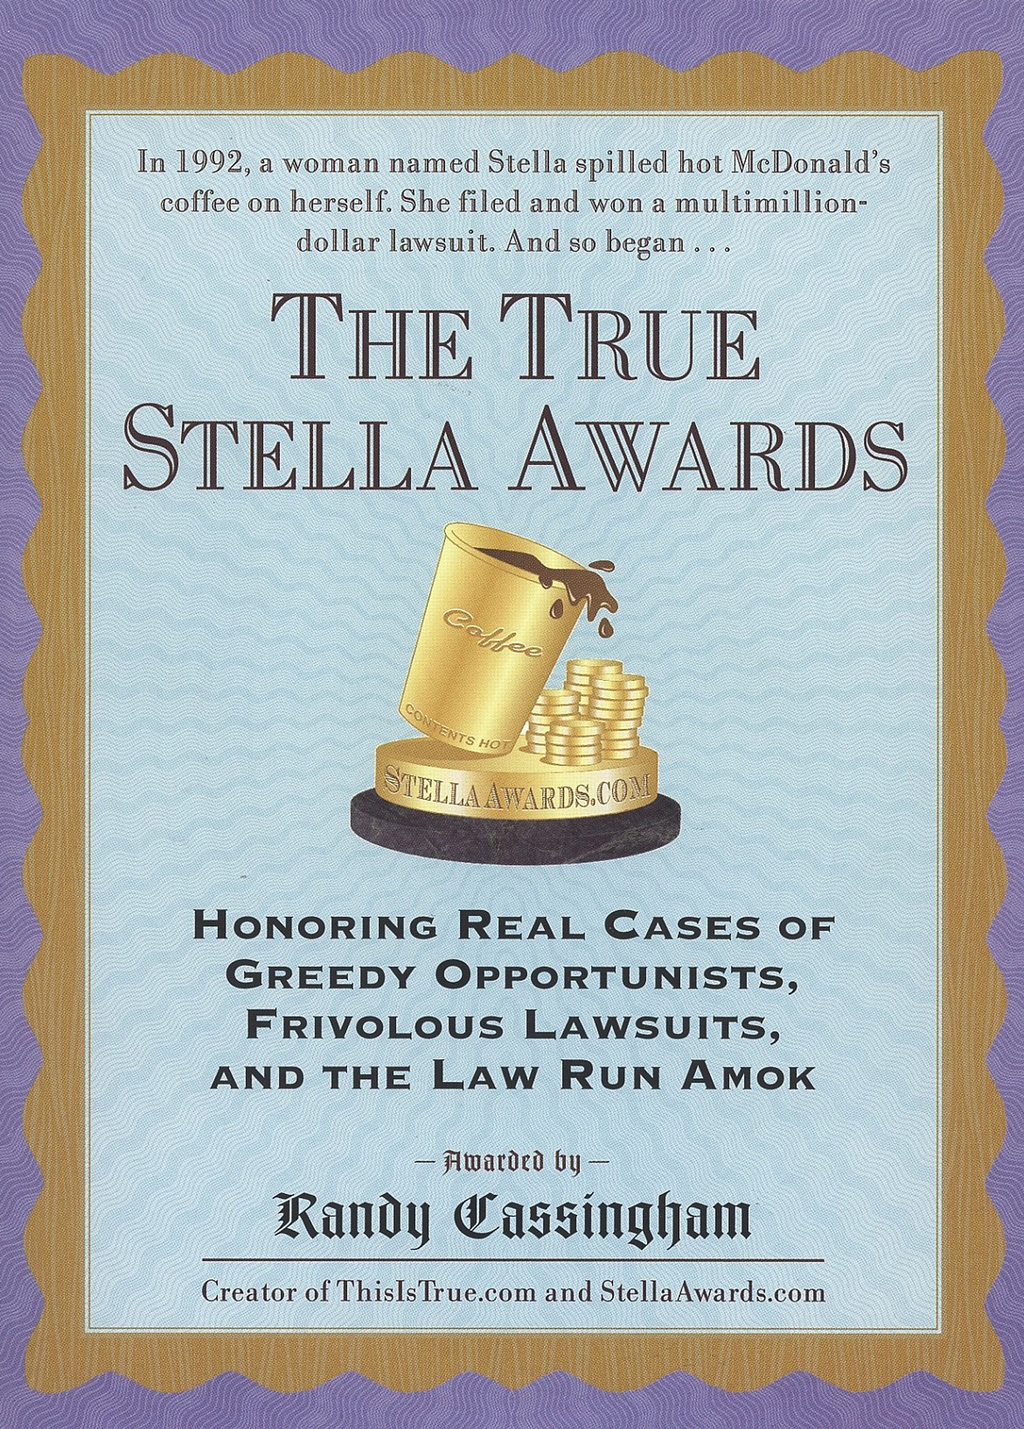 The True Stella Awards By: Randy Cassingham